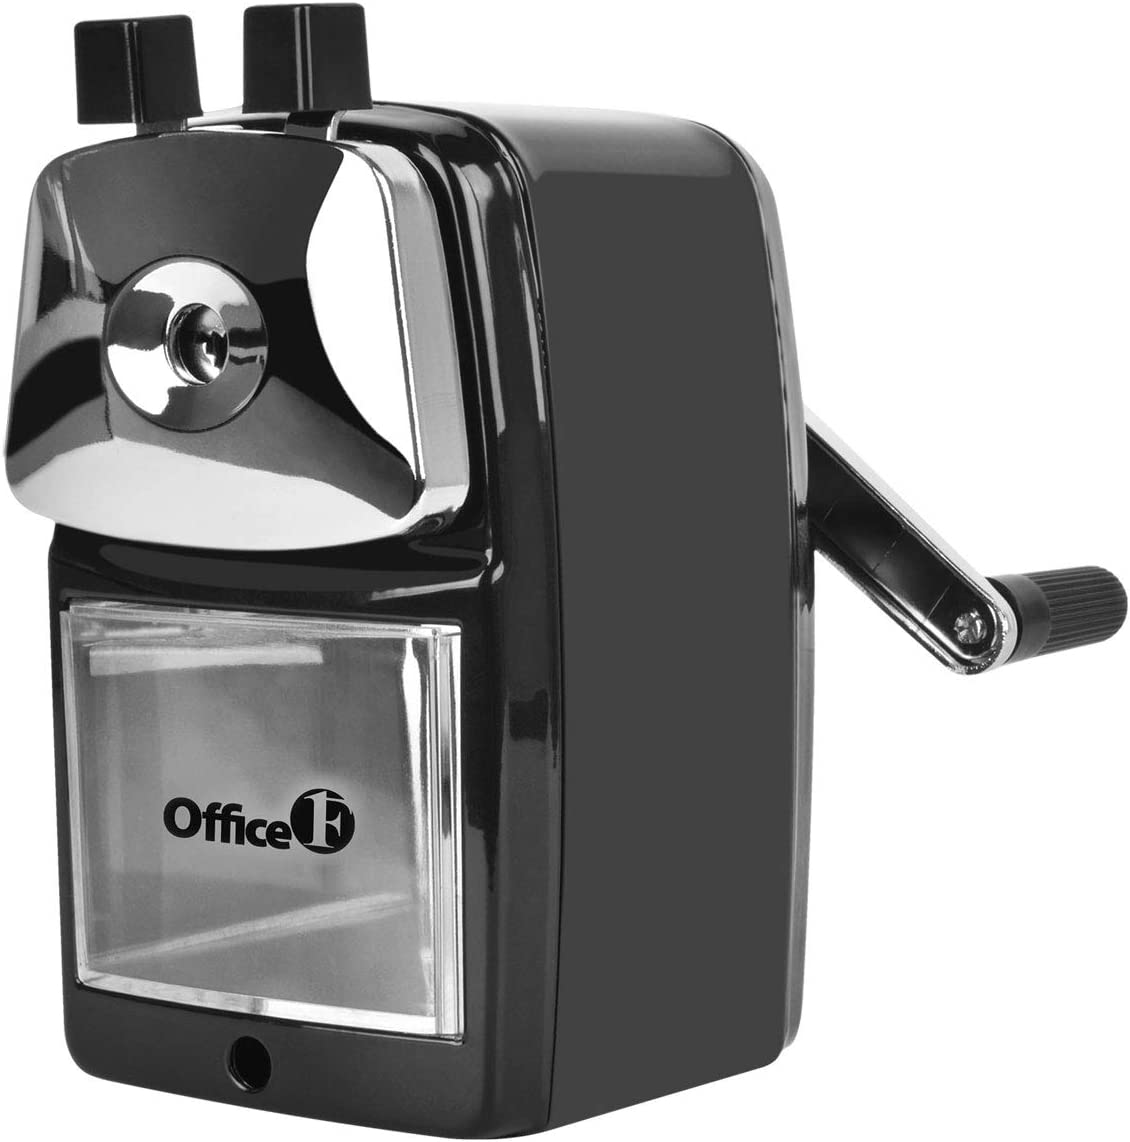 OFFICE1ST Manual Pencil Sharpener, Portable, Metal Body, Heavy-duty Helical Steel Blade, Suitable for Classroom, Office and Home (Black)